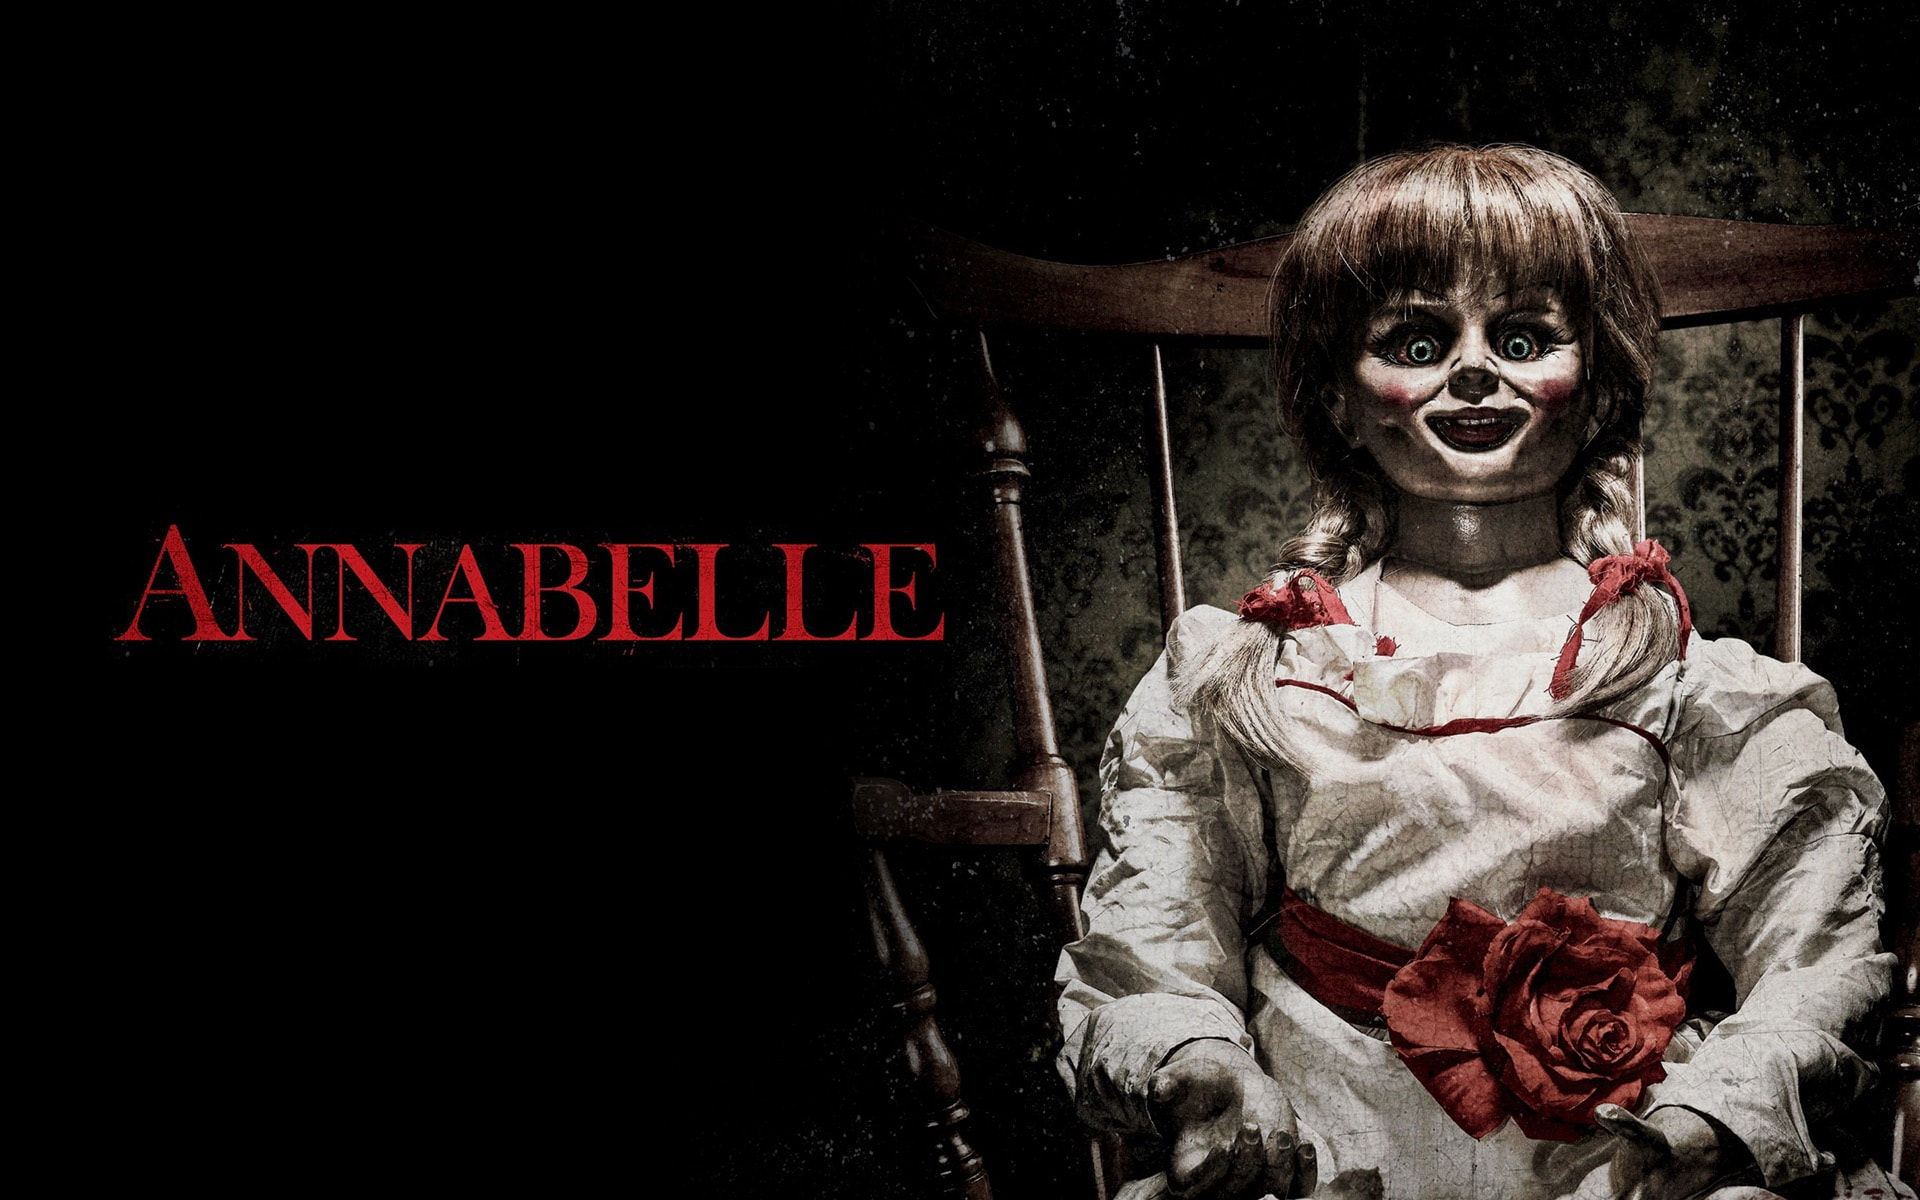 annabelle hd desktop wallpapers | 7wallpapers